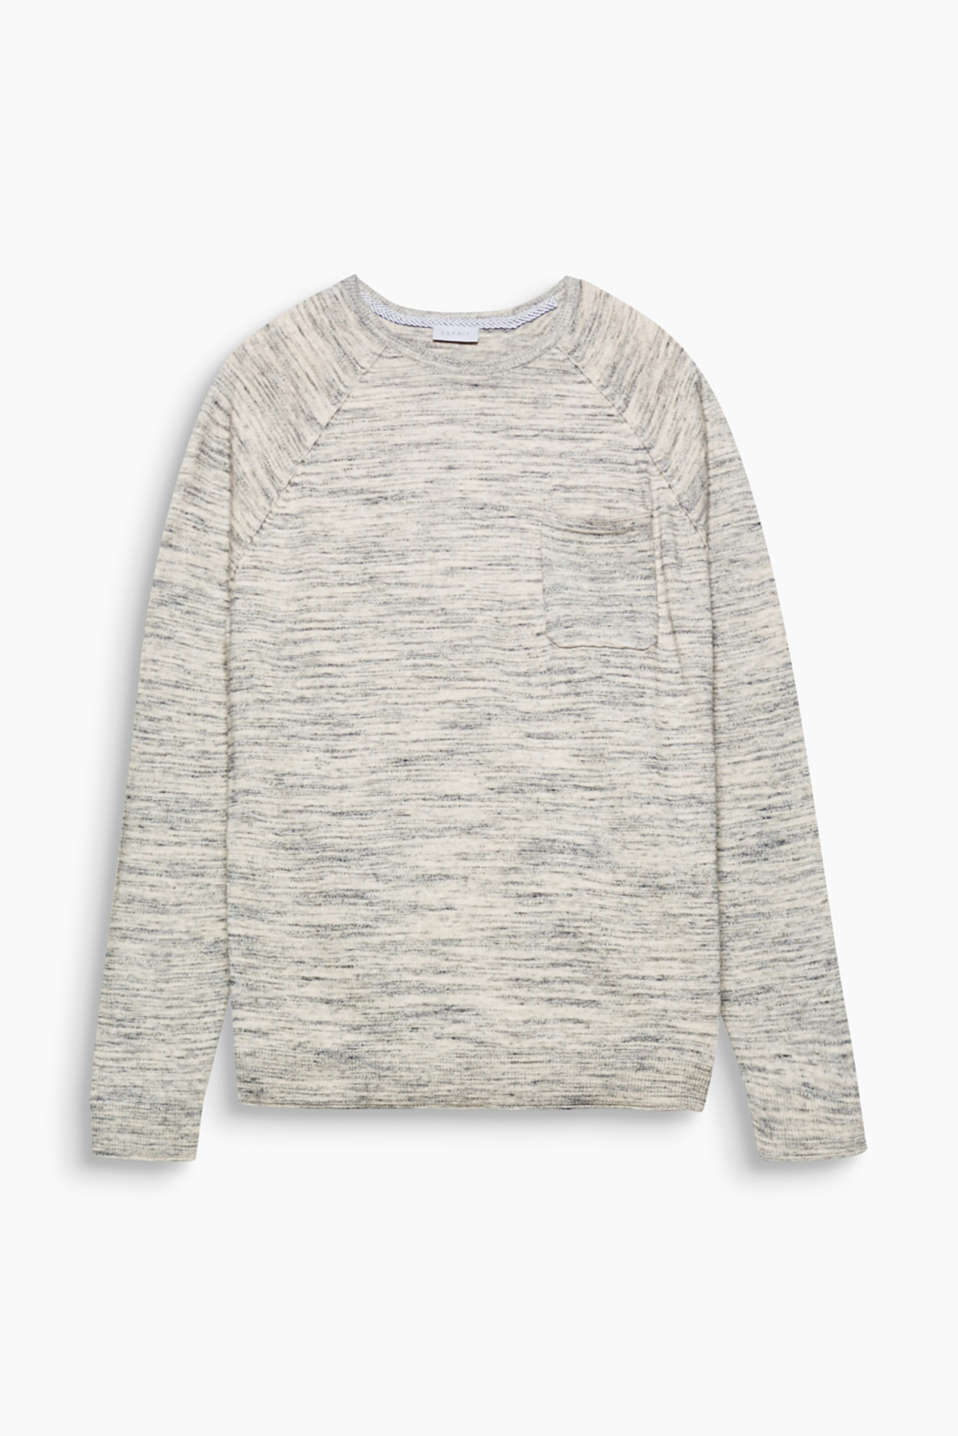 Modern knitwear! A melange finish and small breast pocket make this jumper a modern knitwear update.